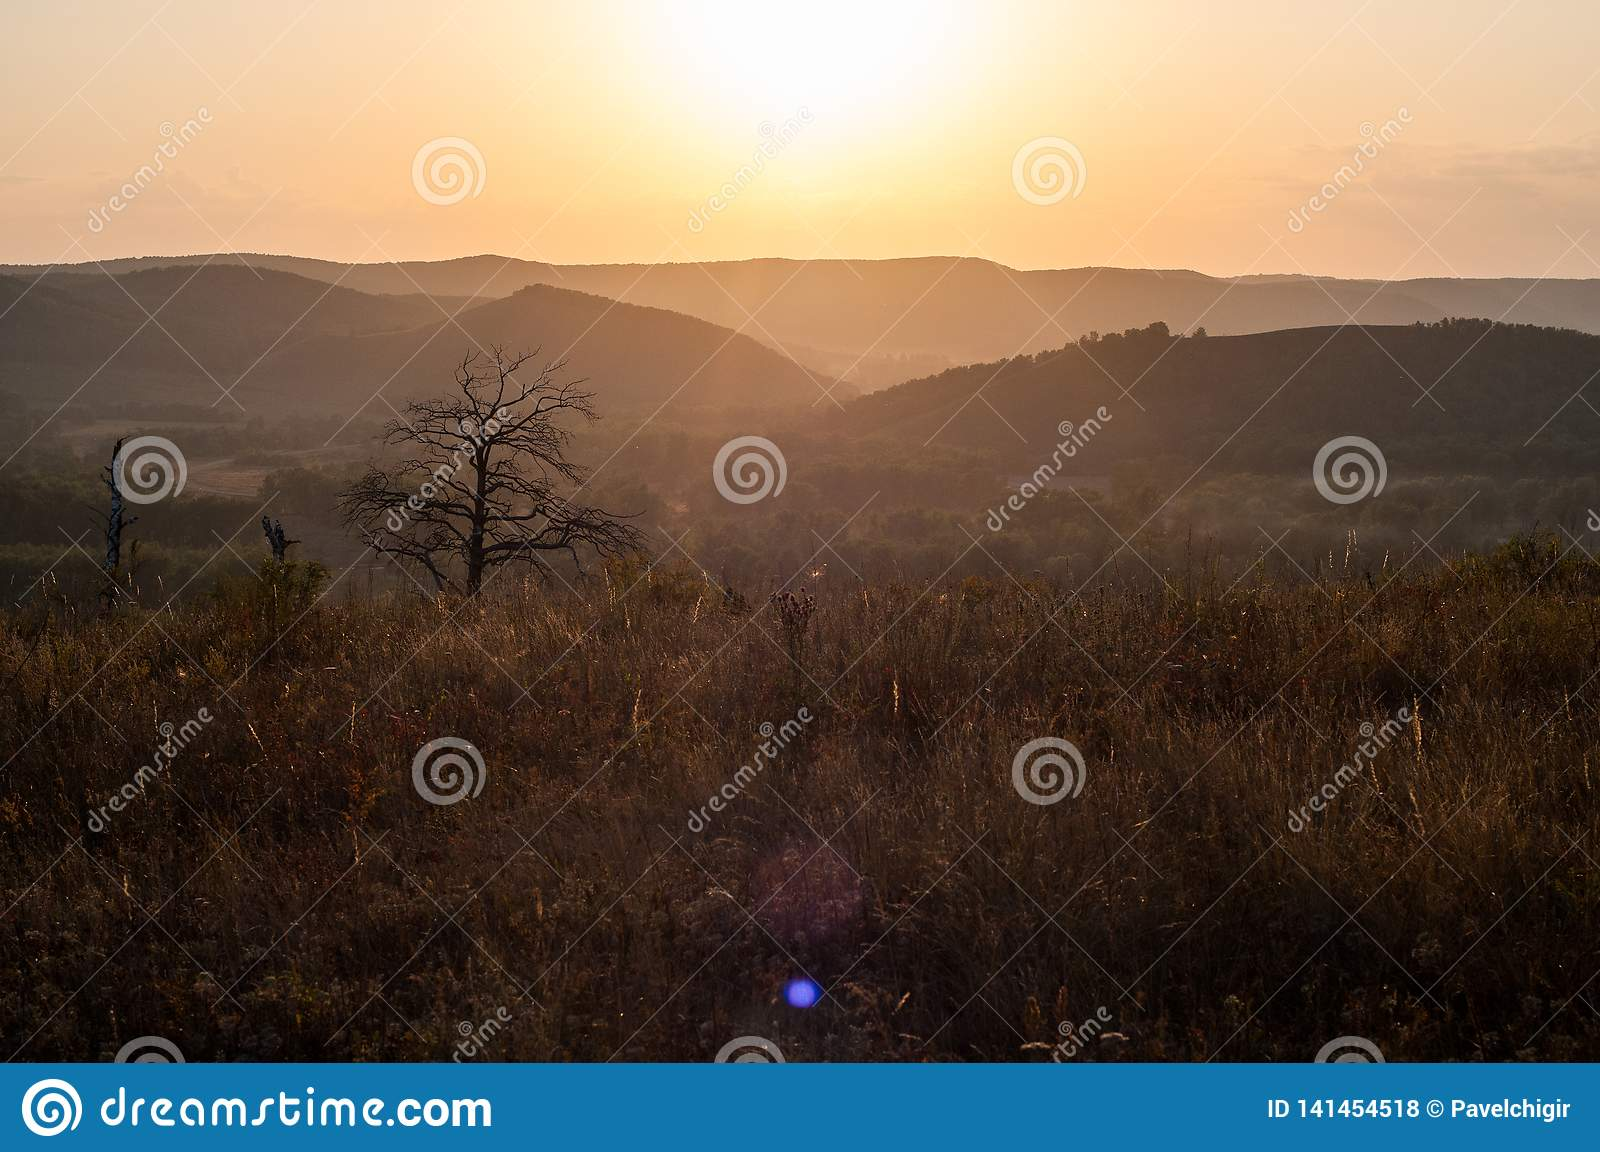 Sunset in the mountains, in the foreground spruce and several tree trunks